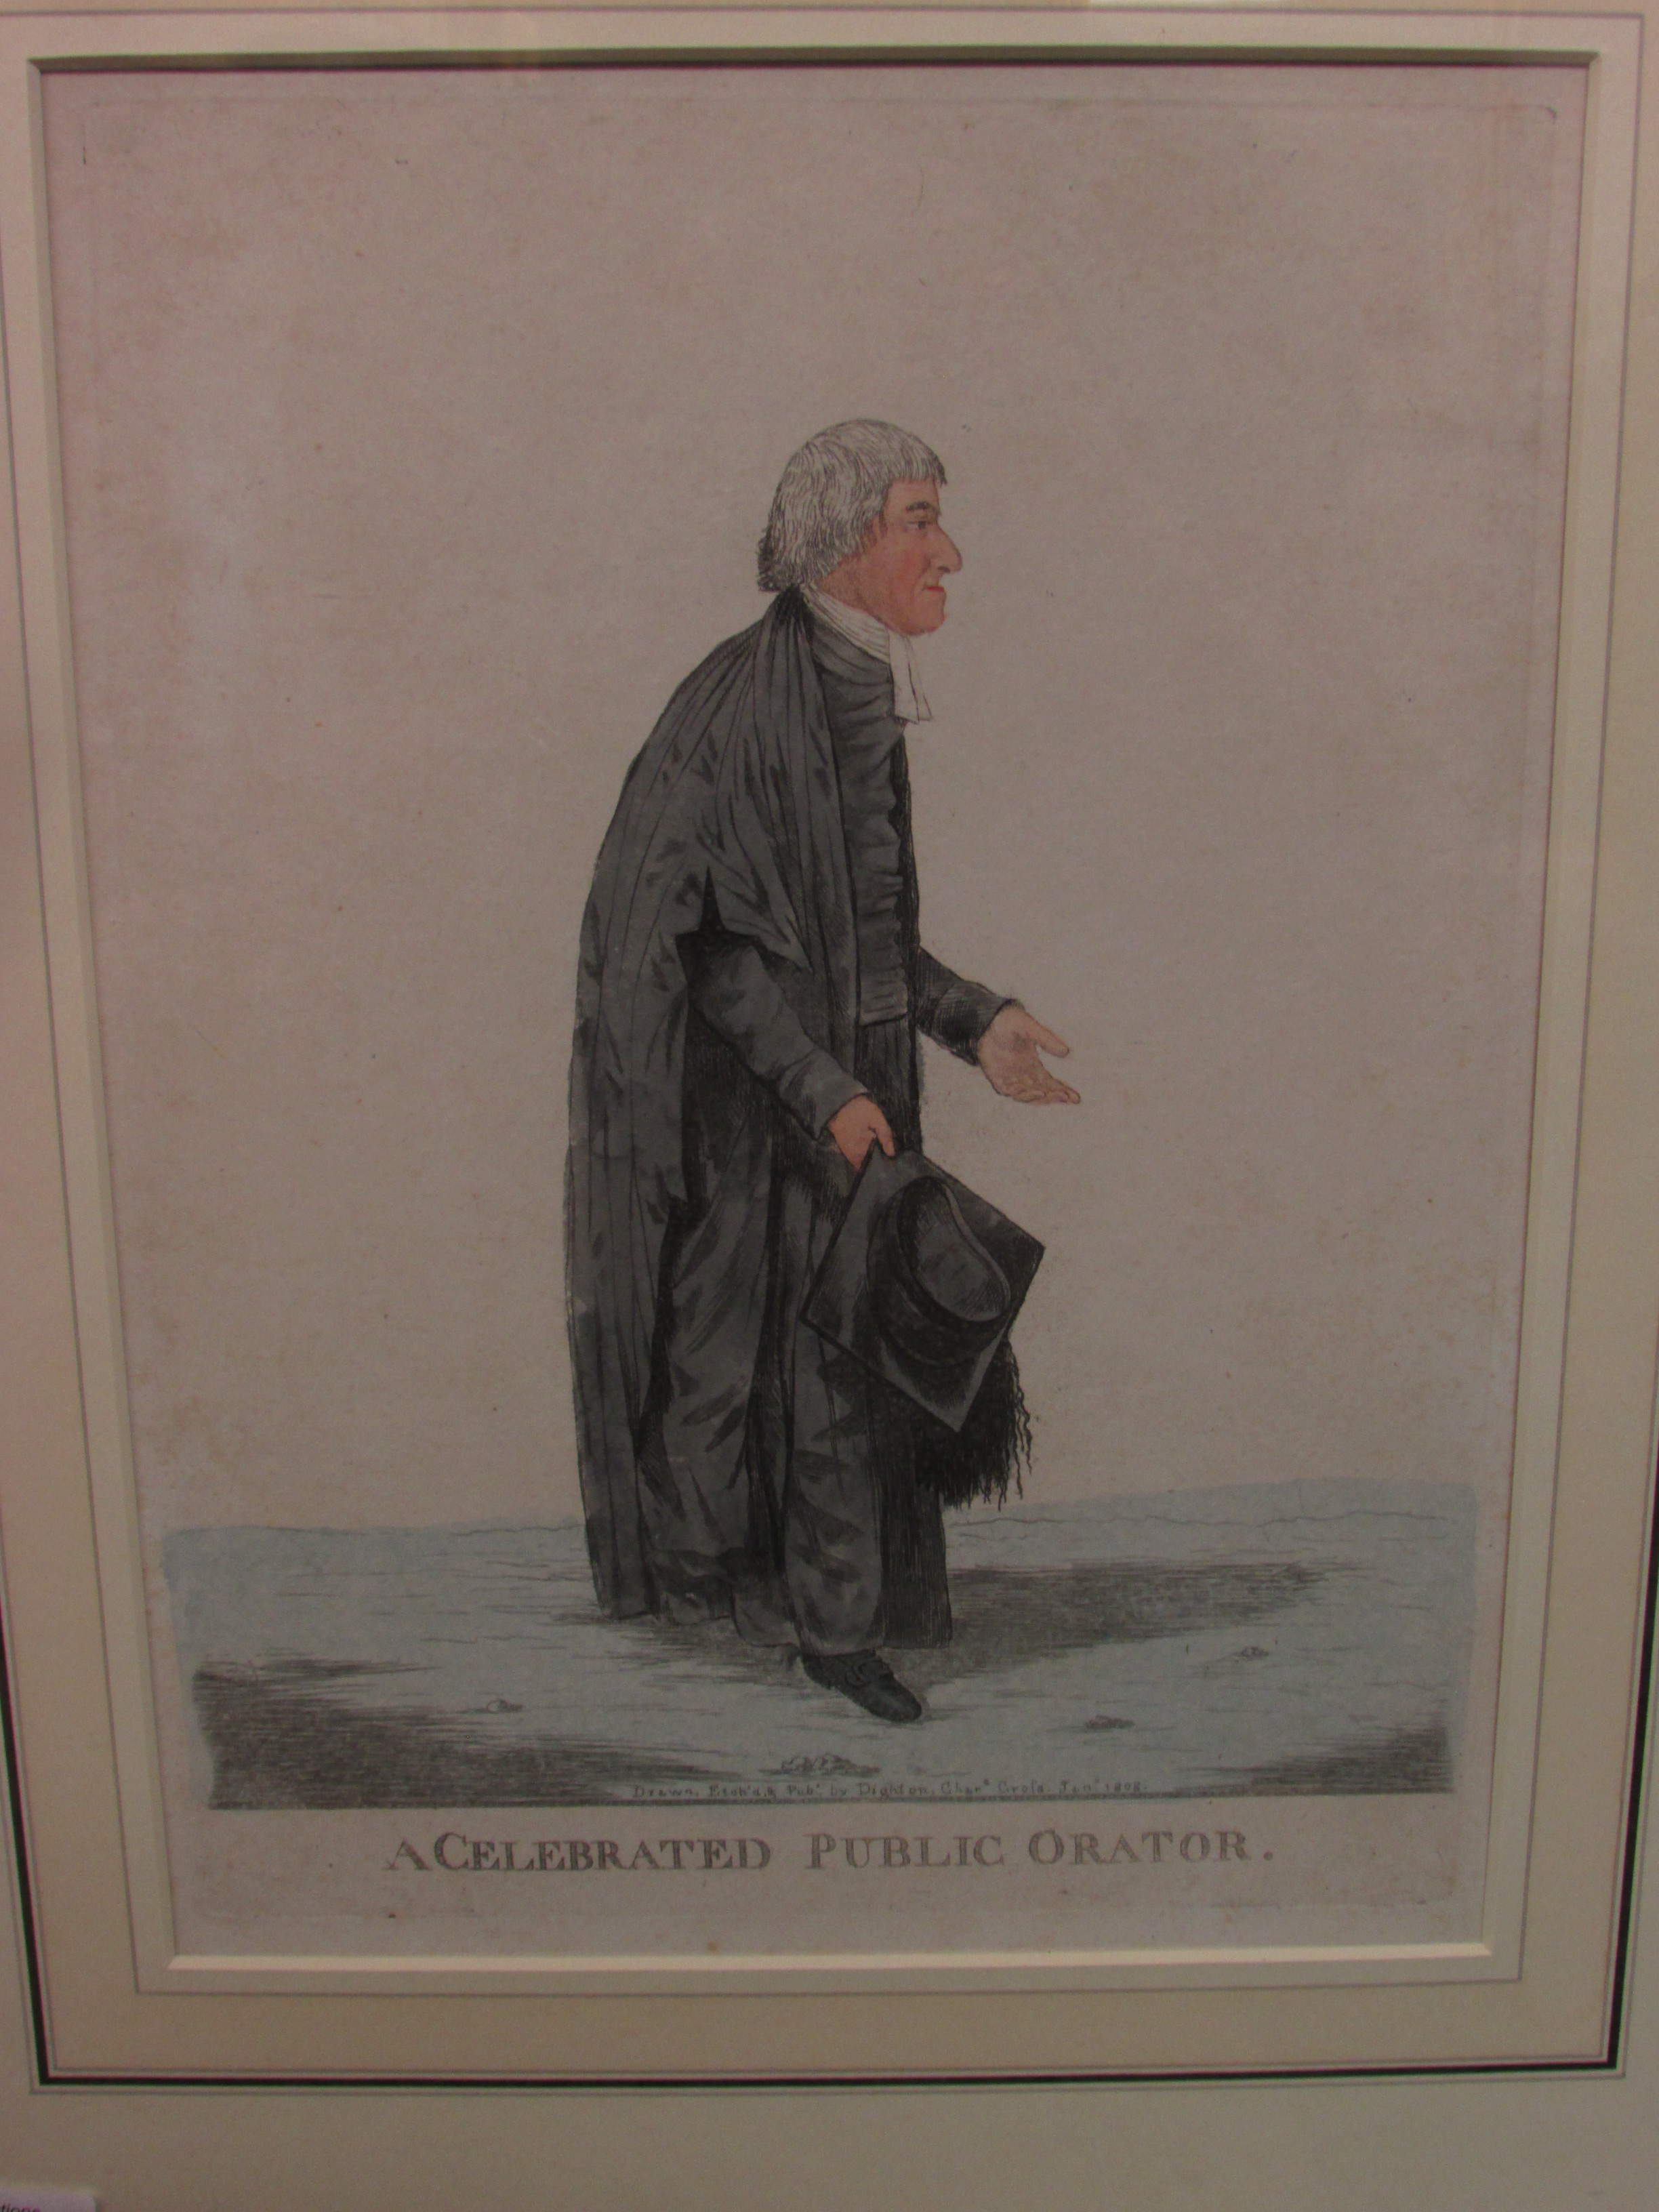 Lot 219 - After Dighton, 'A Celebrated Public Orator', tinted etching, 'Drawn Etch'd & Pubd by Dighton Chars